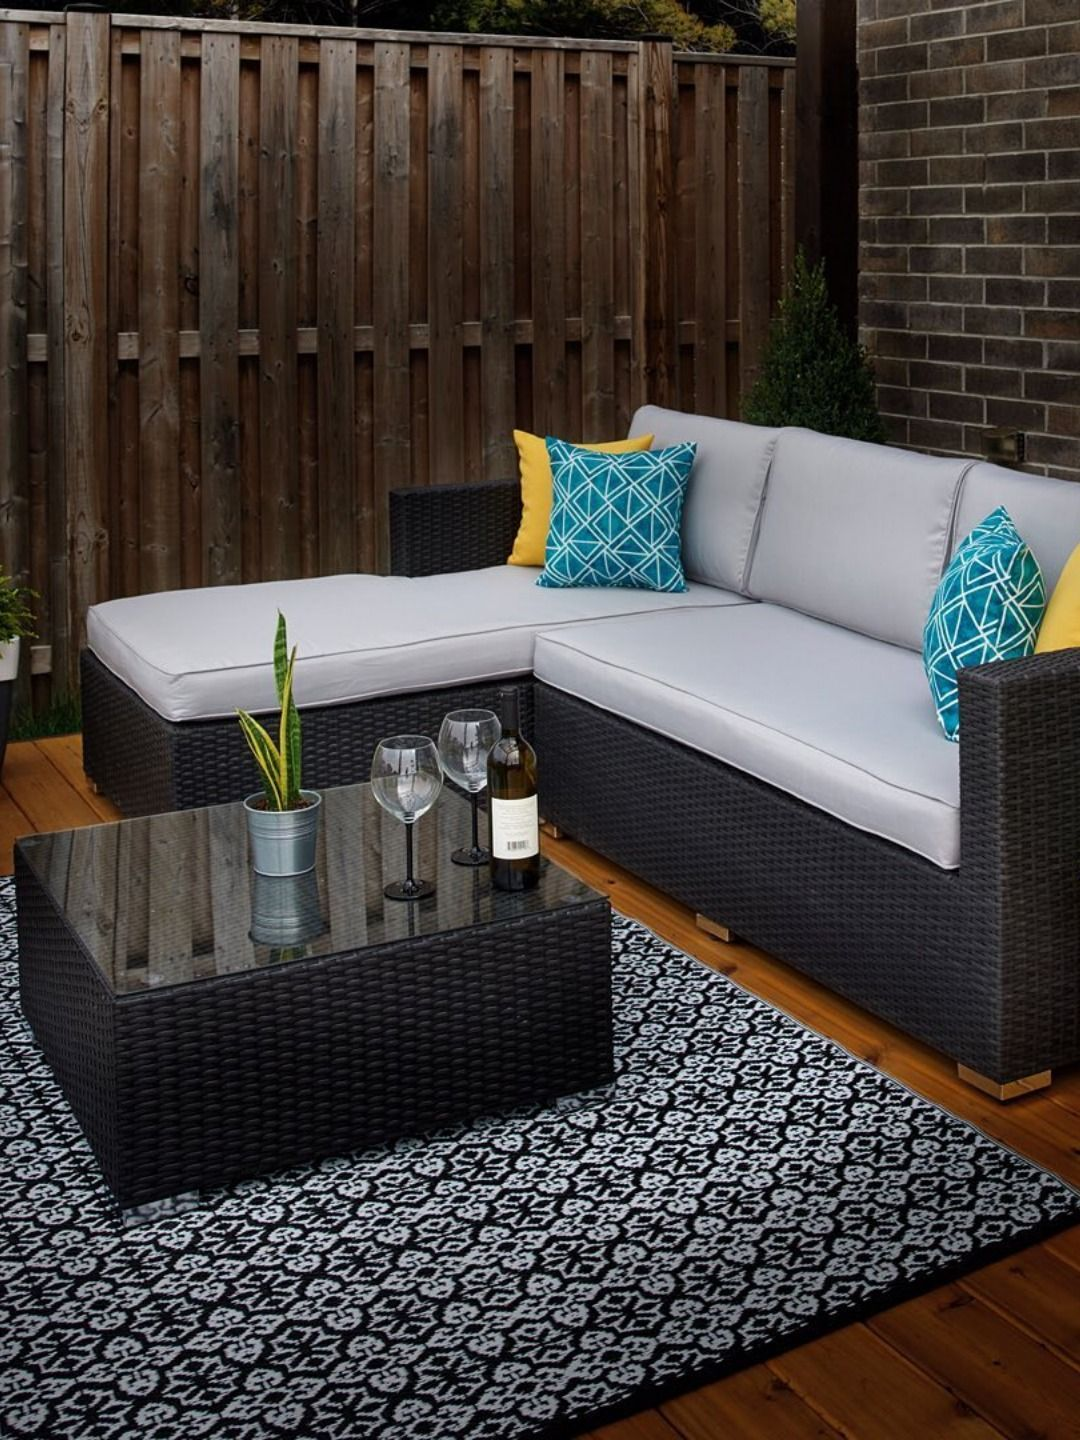 Outdoor Furniture Clearance Clearance Outdoor Furniture Outdoor Sectional Sofa Garden Sofa Set